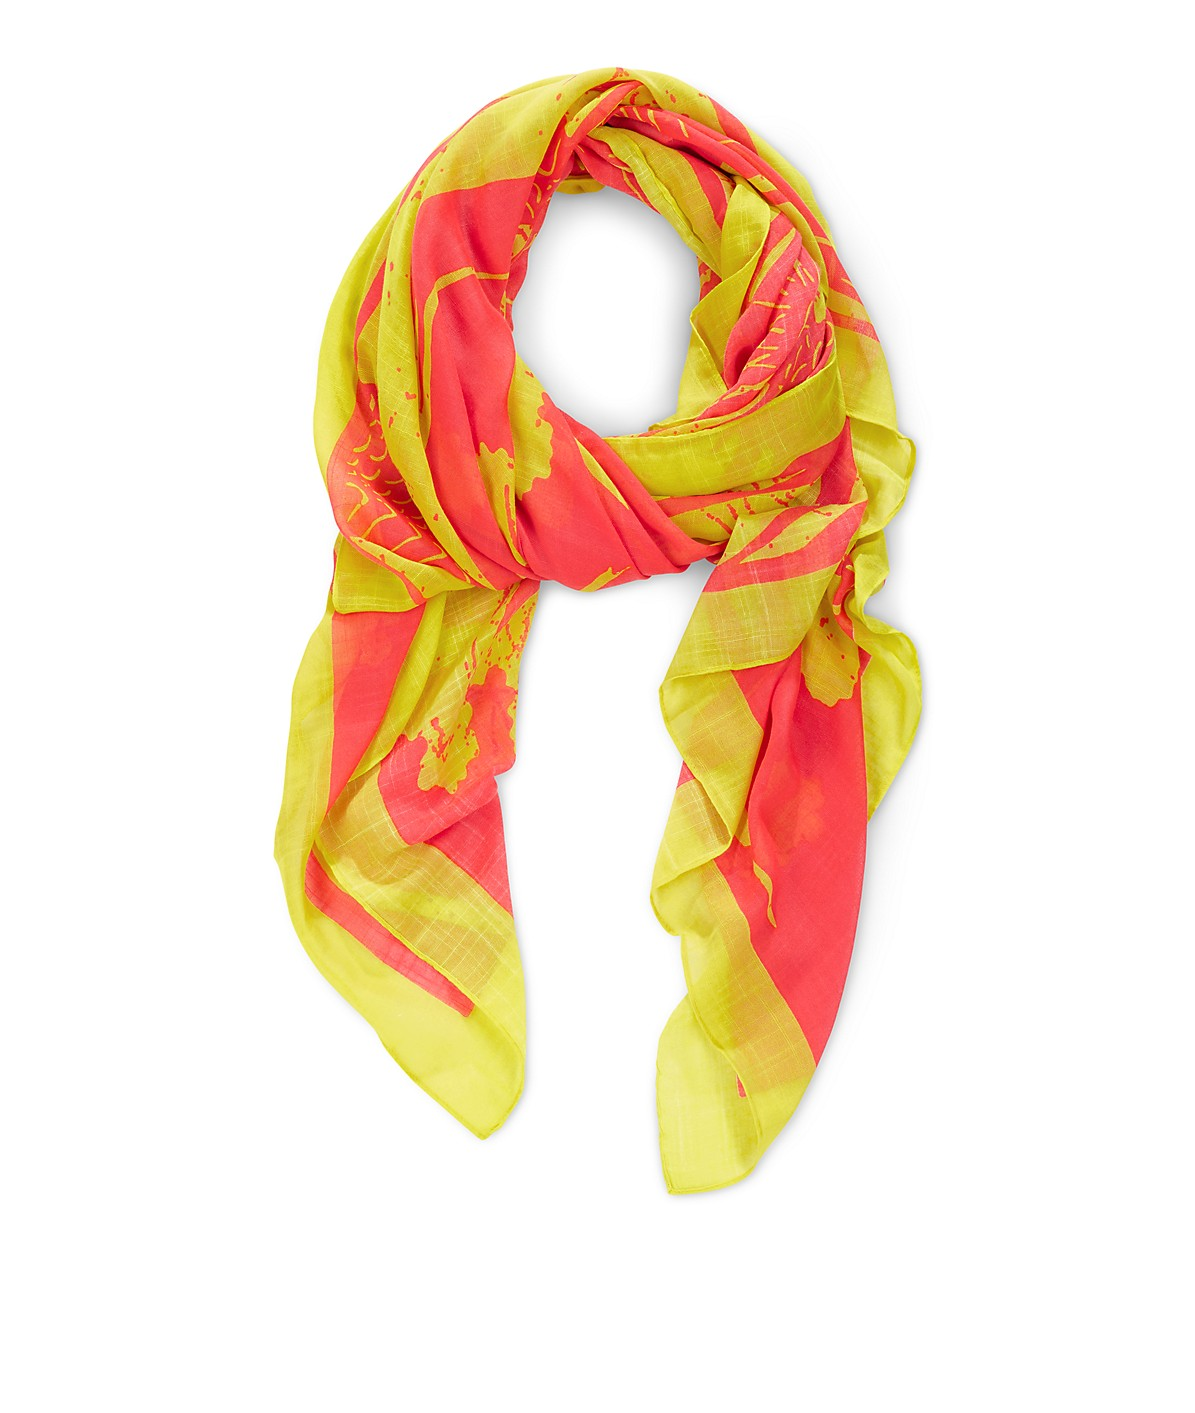 Scarf H1169502 from liebeskind